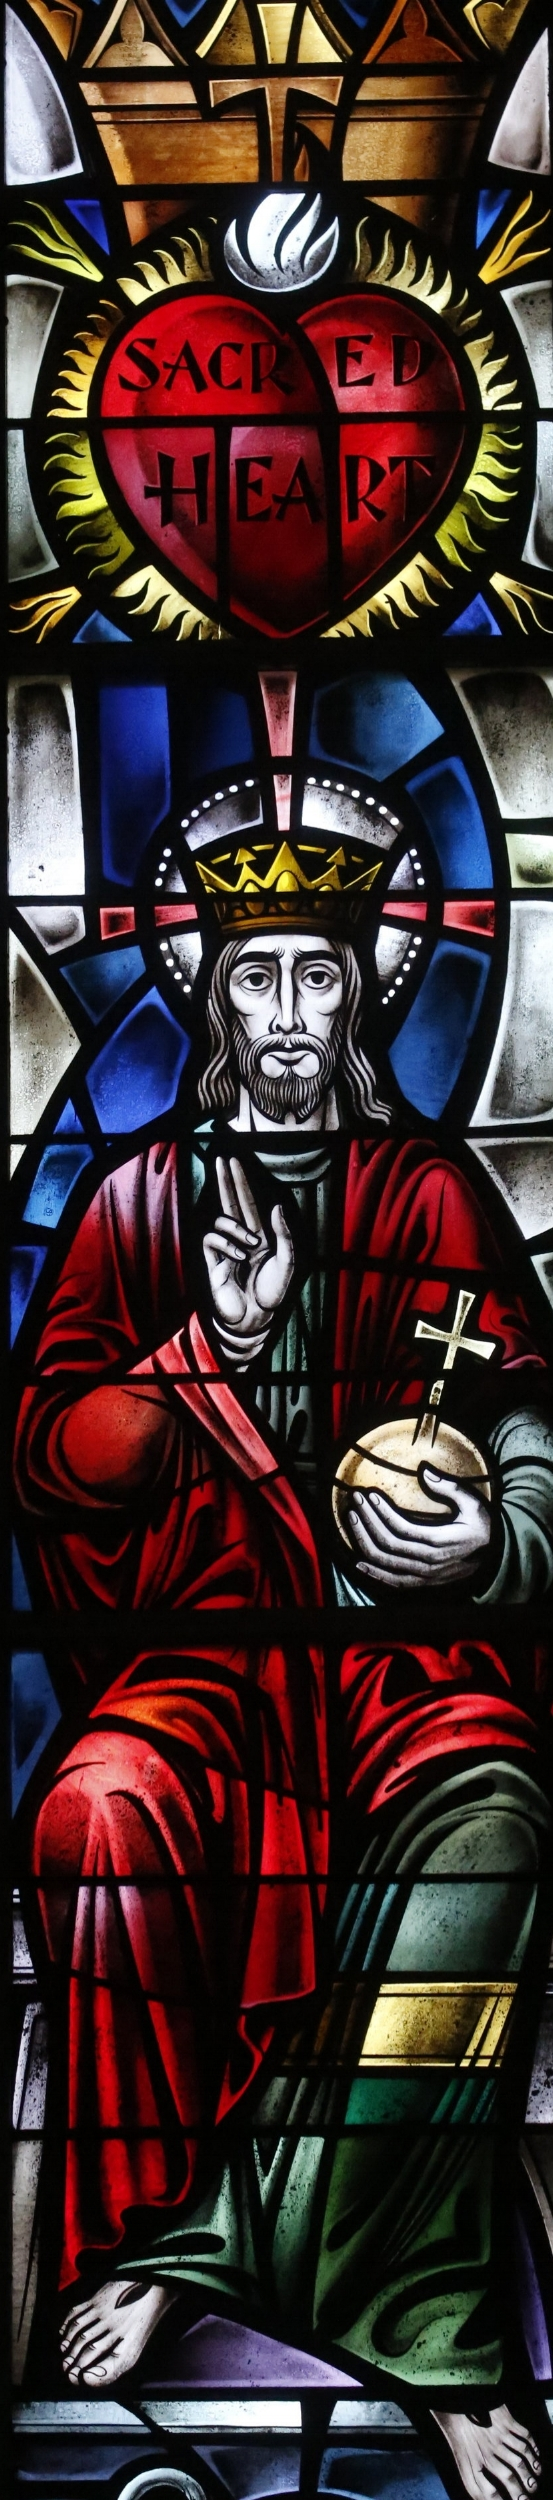 Stained glass Sacred Heart.jpg